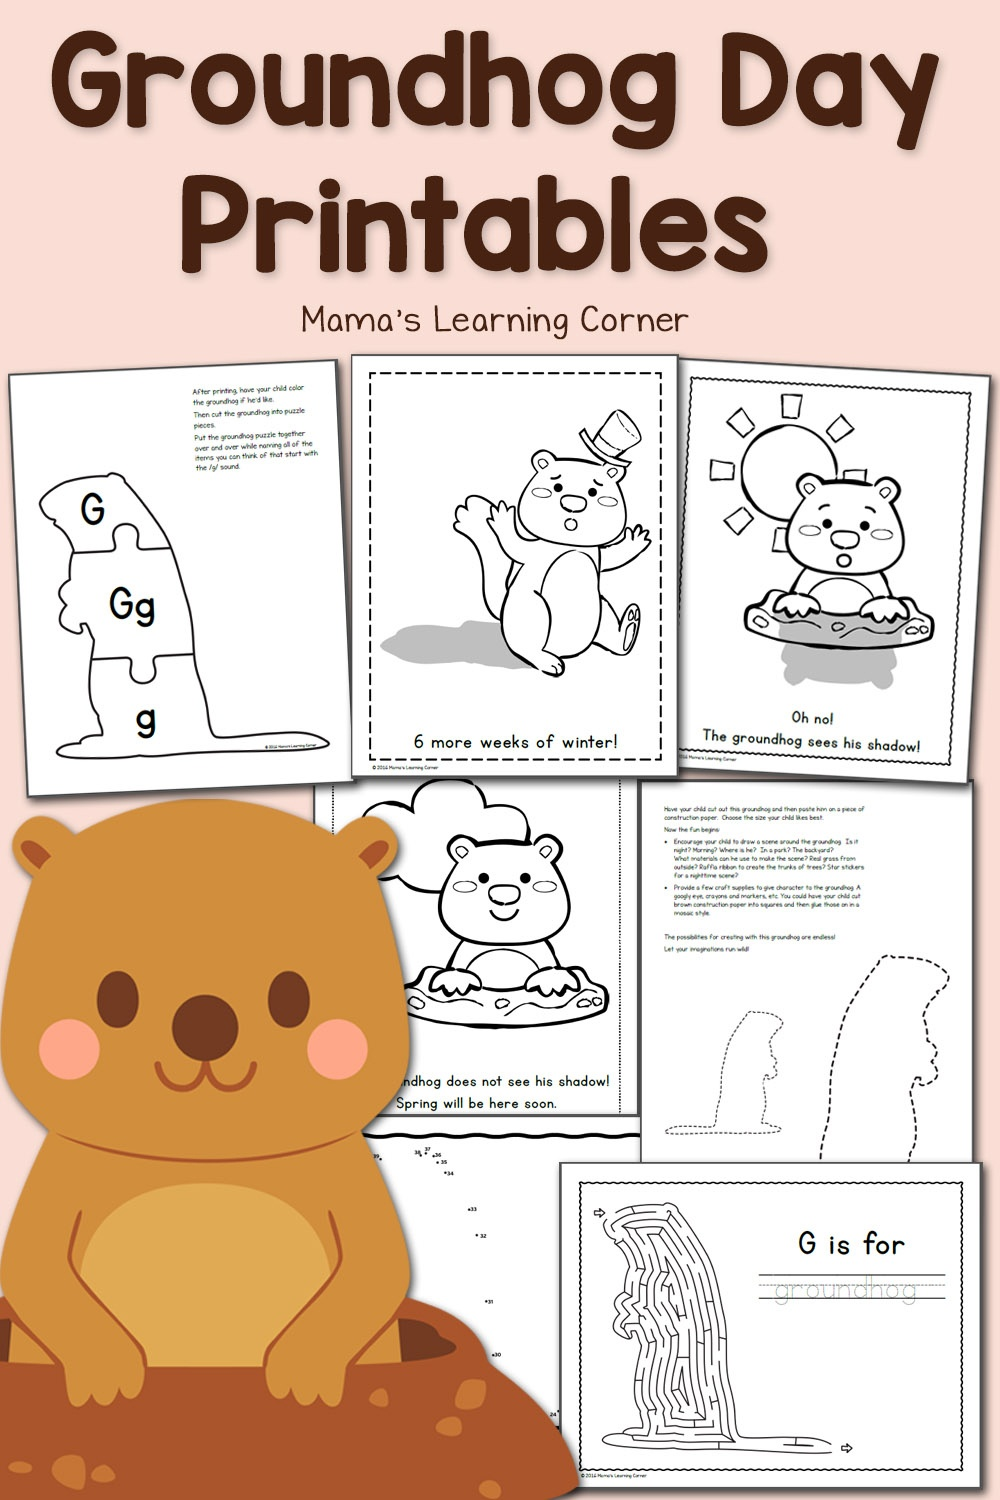 Free Groundhog Day Printables! - Mamas Learning Corner - Free Groundhog Printables Preschool